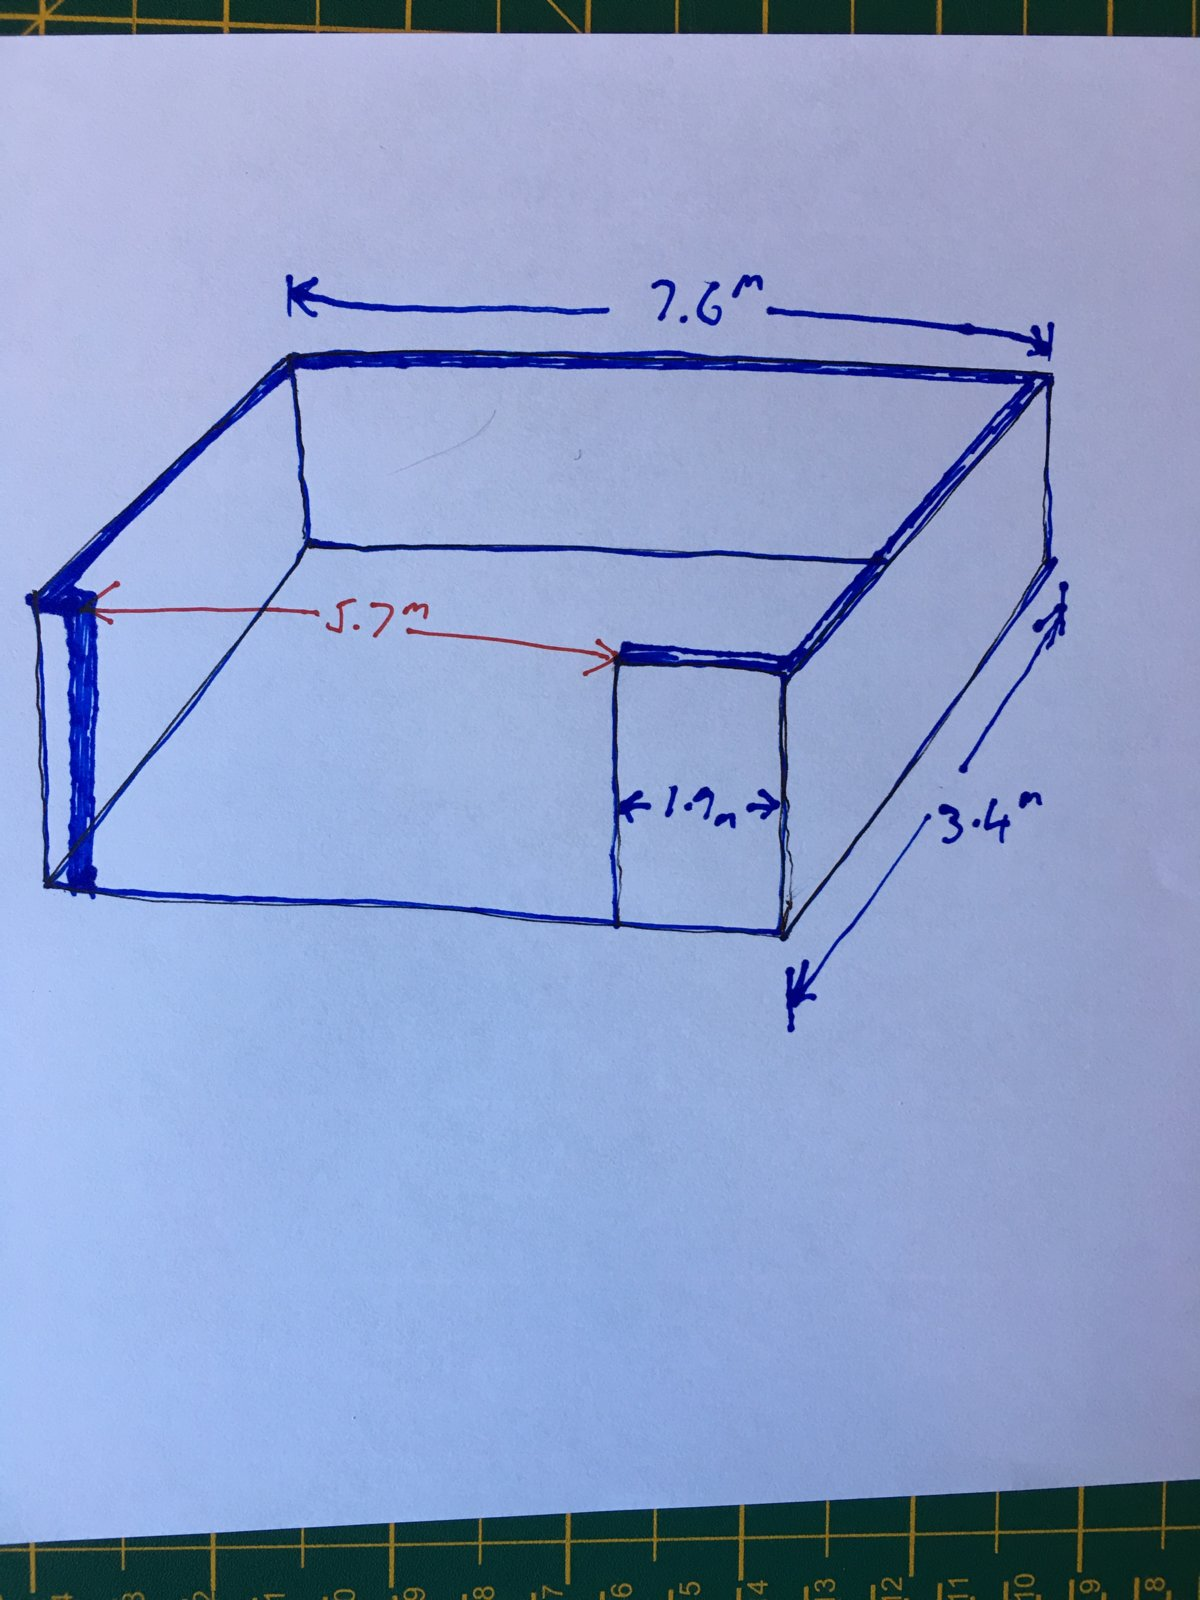 6m Span flat roof support beam | DIYnot Forums